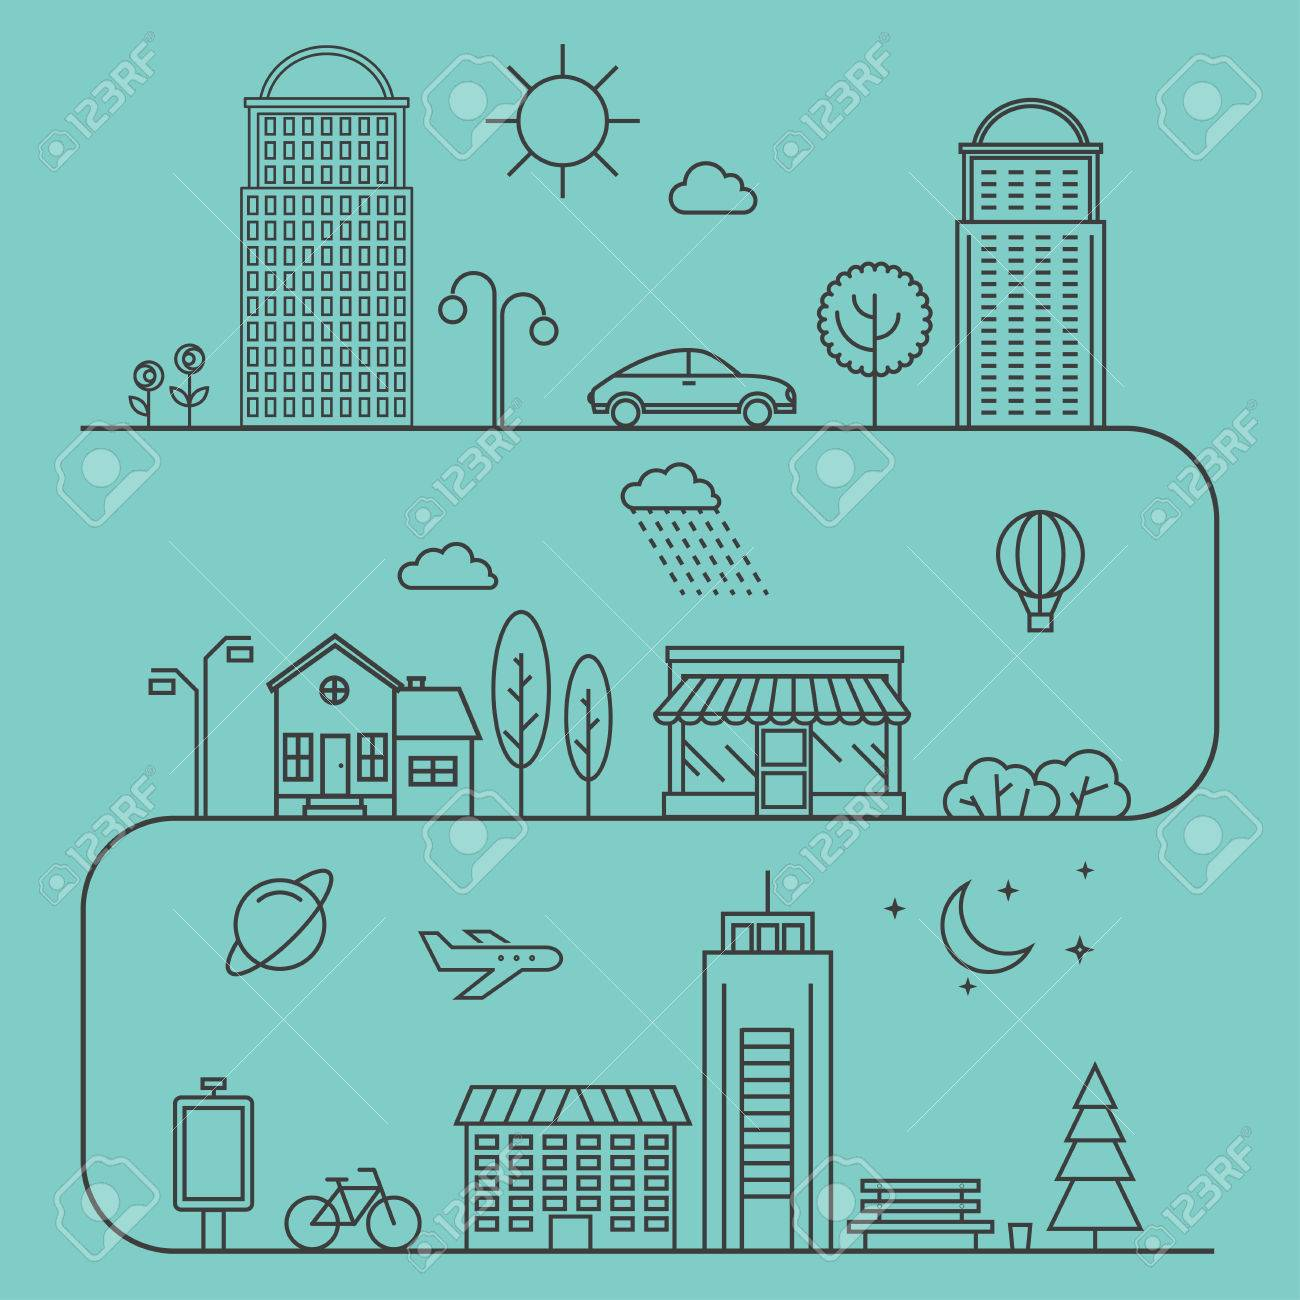 Vector city illustration in linear style. Icons and illustrations with buildings, houses and architecture signs. Ideal for business web publications and graphic design. Flat style vector illustration. - 55550470